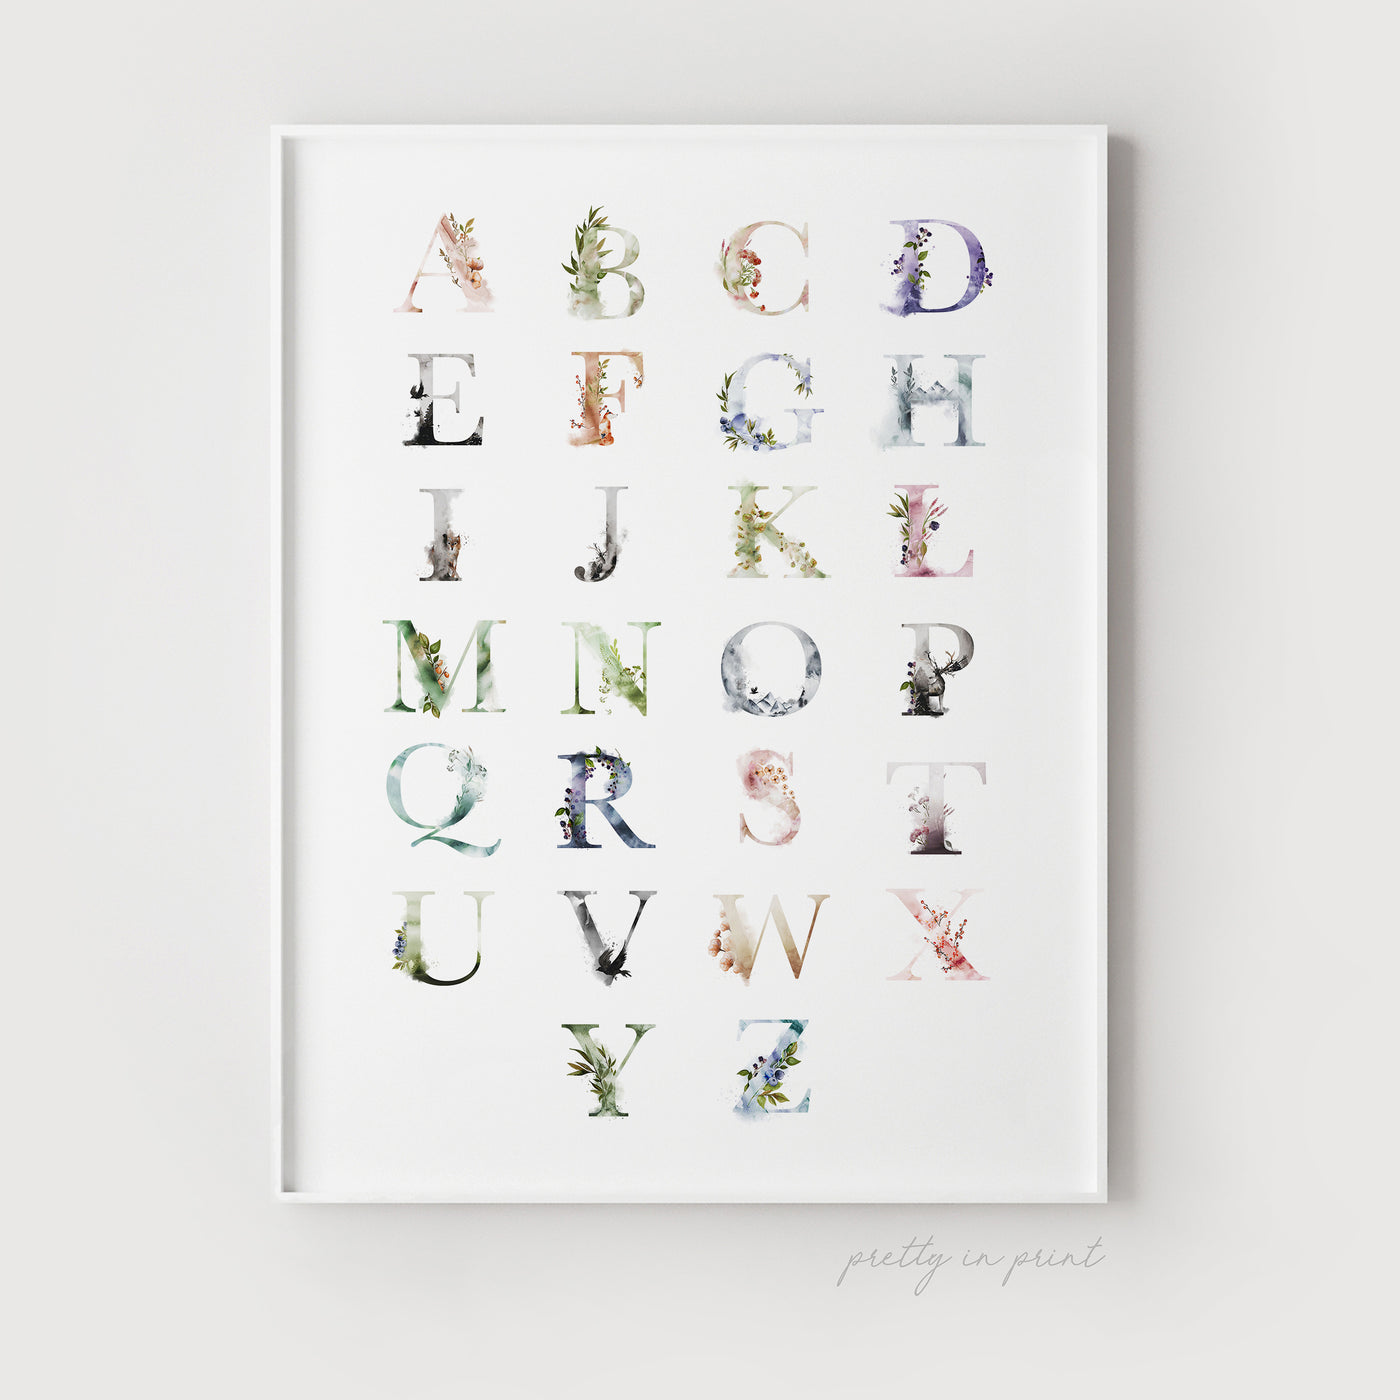 Alphabet Chart - ABC Print - Pretty in Print Art